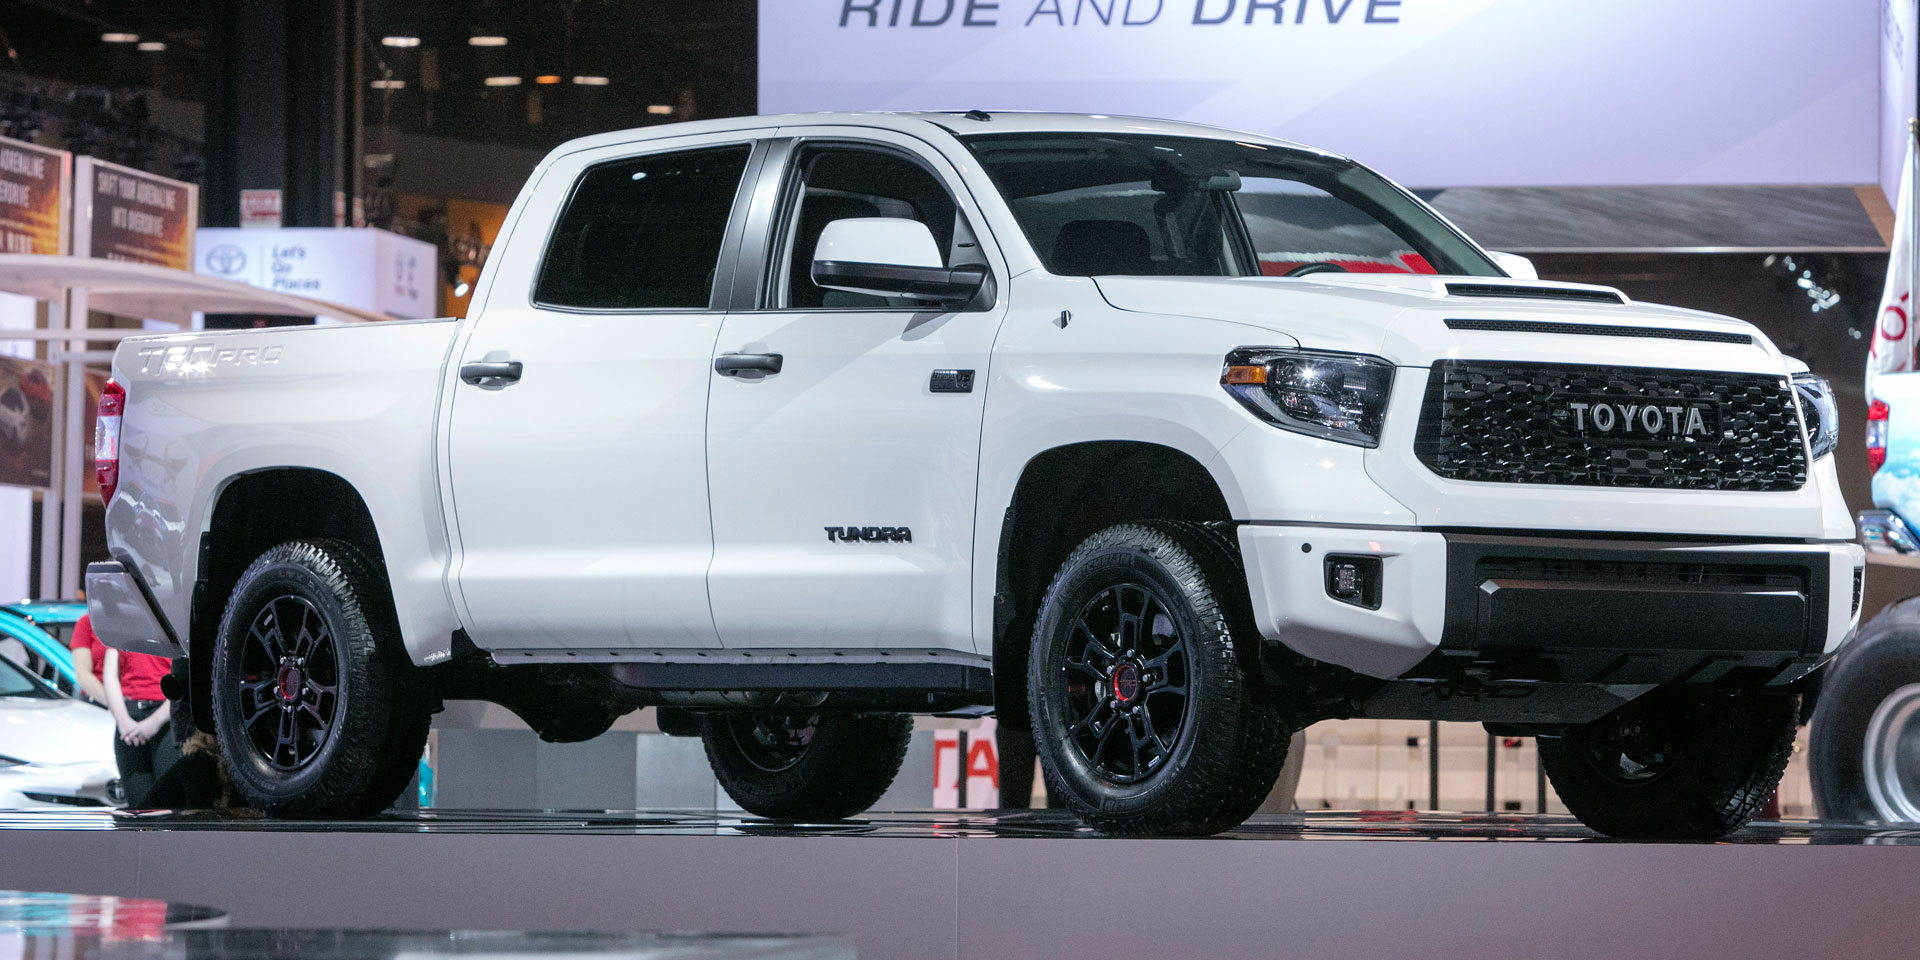 2019 Toyota Tundra Vehicles On Display Chicago Auto Show